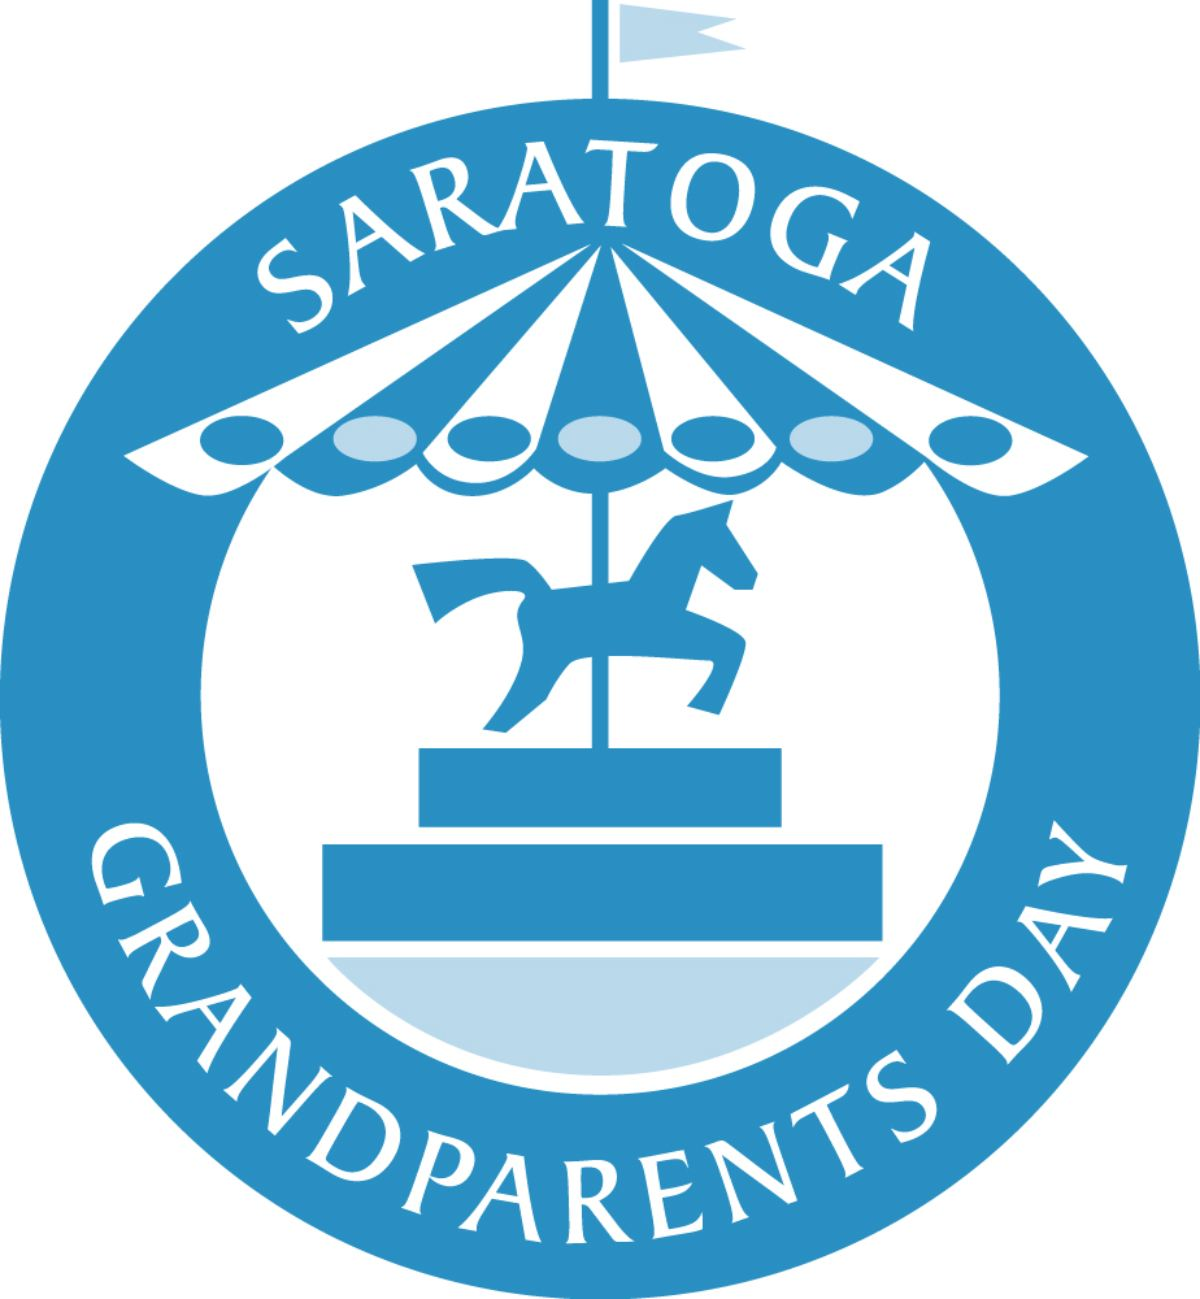 logo for saratoga grandparents day with a carousel horse